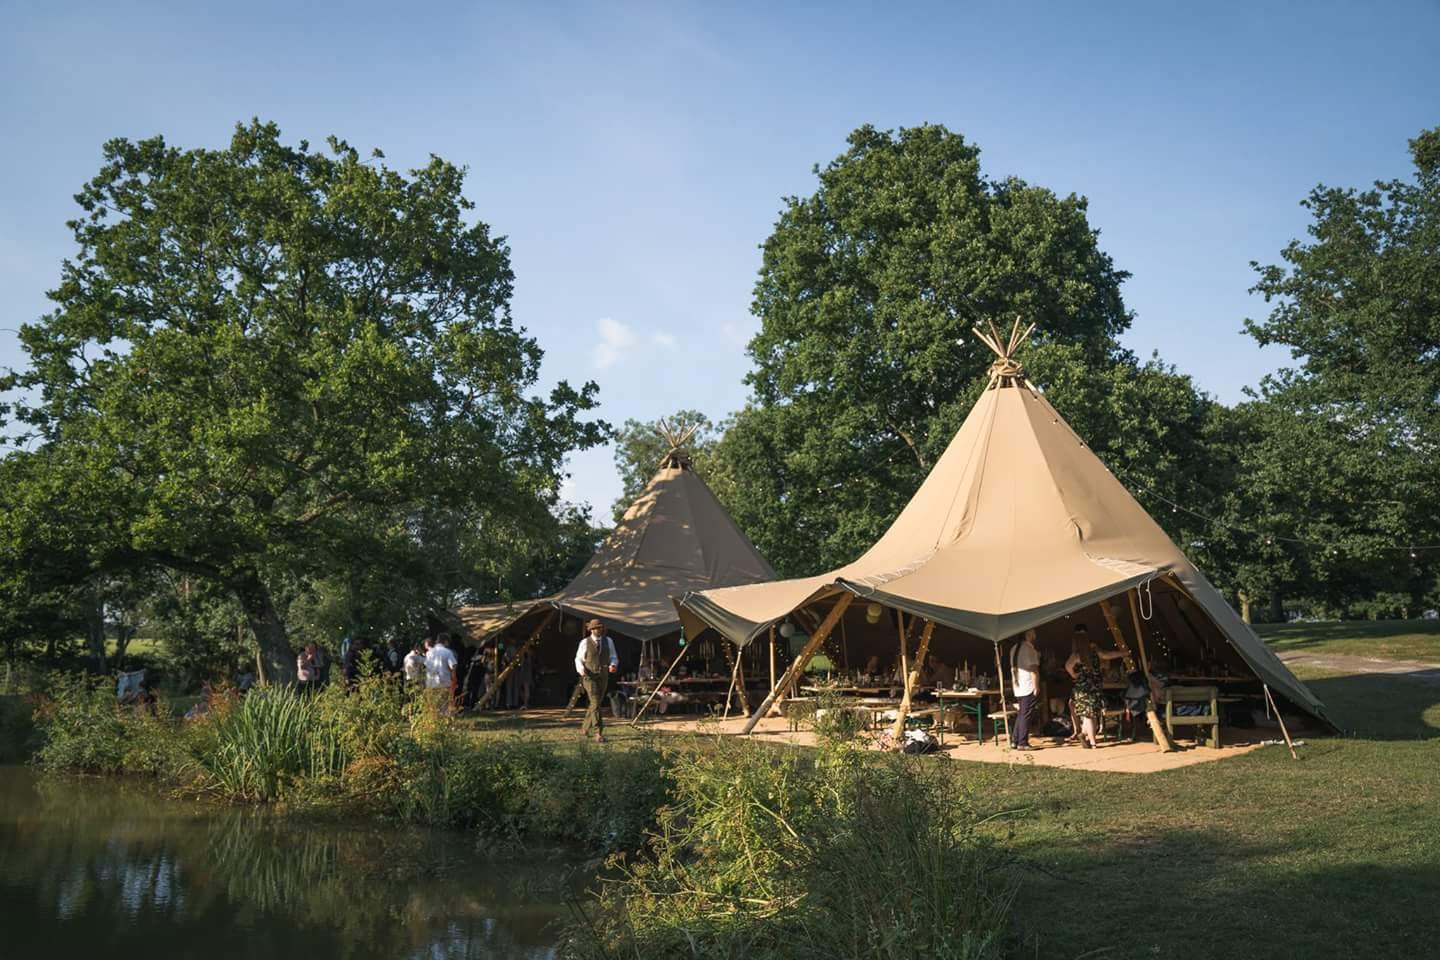 Tipi hire - Tipis by lake